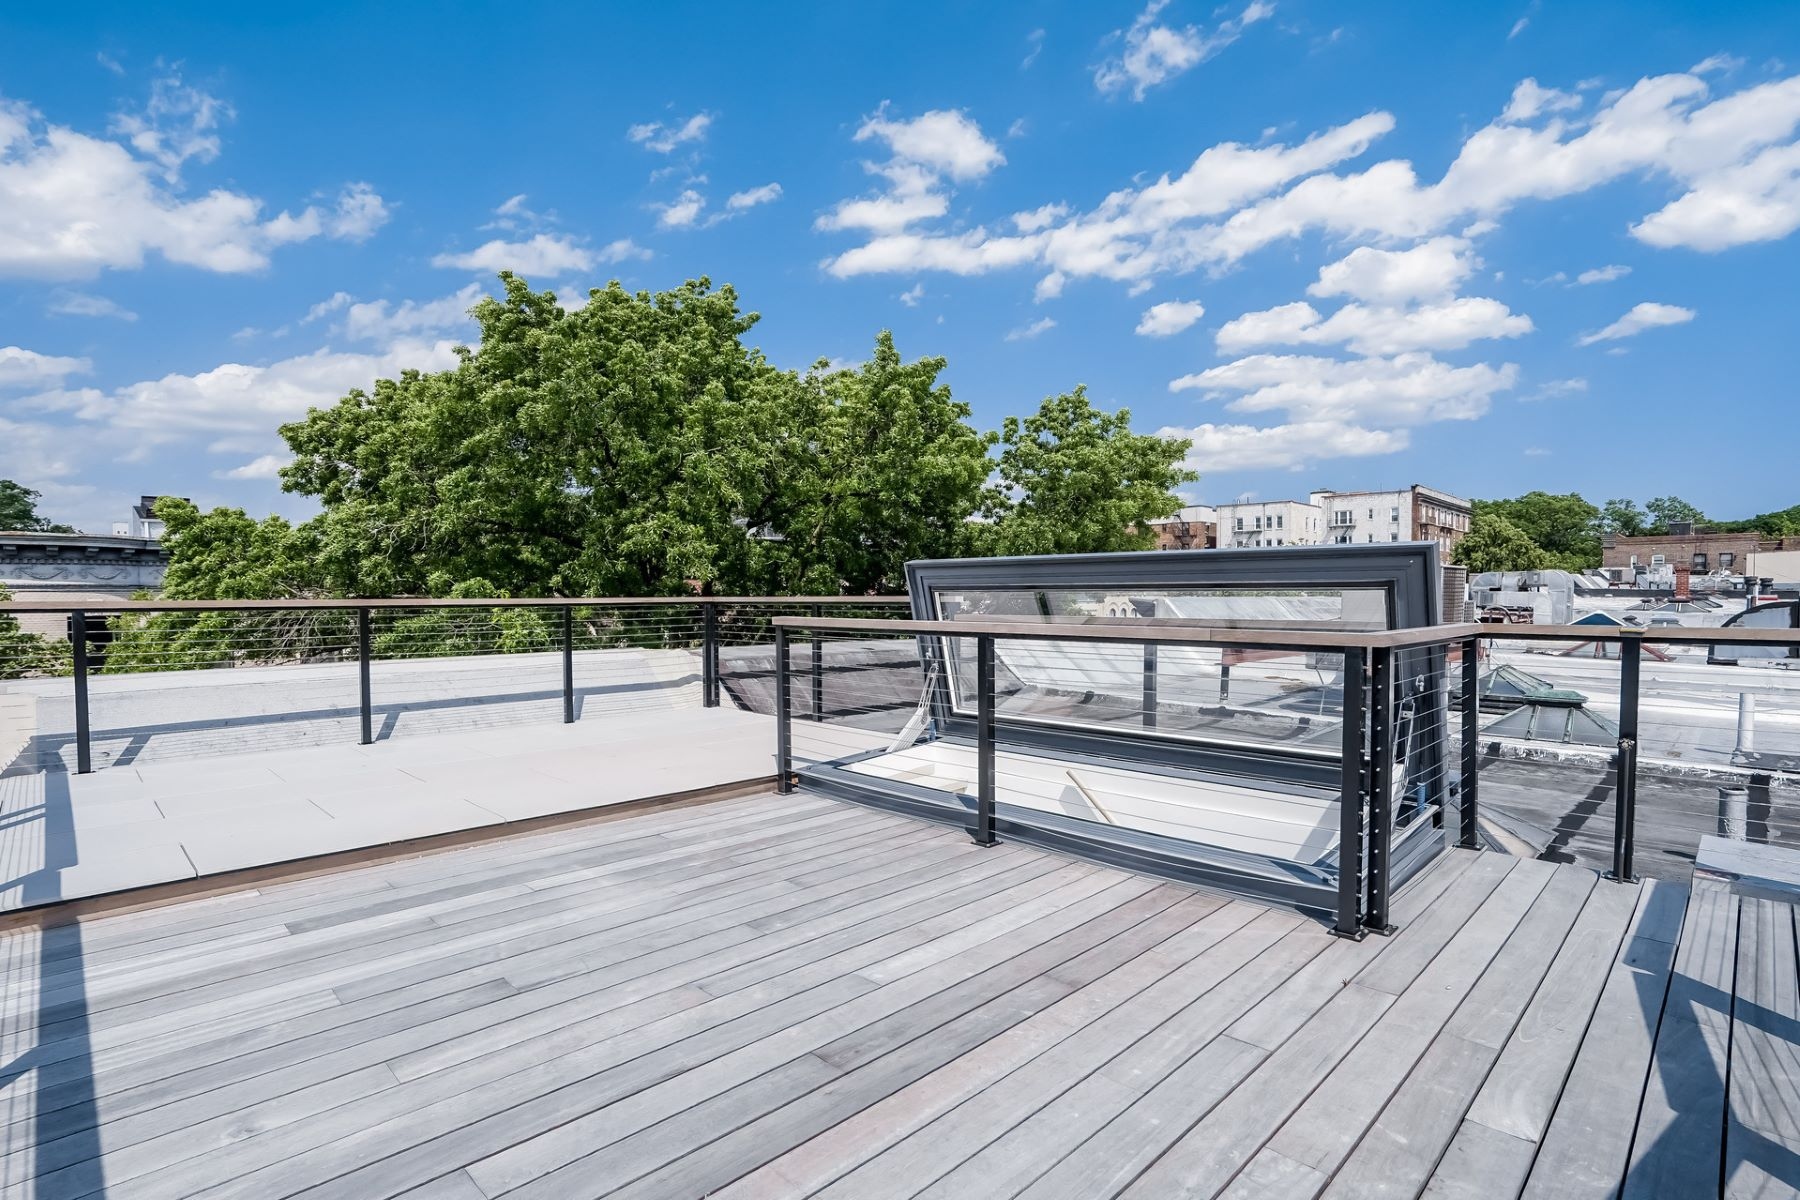 Additional photo for property listing at 540 4th Street  Brooklyn, New York 11215 United States